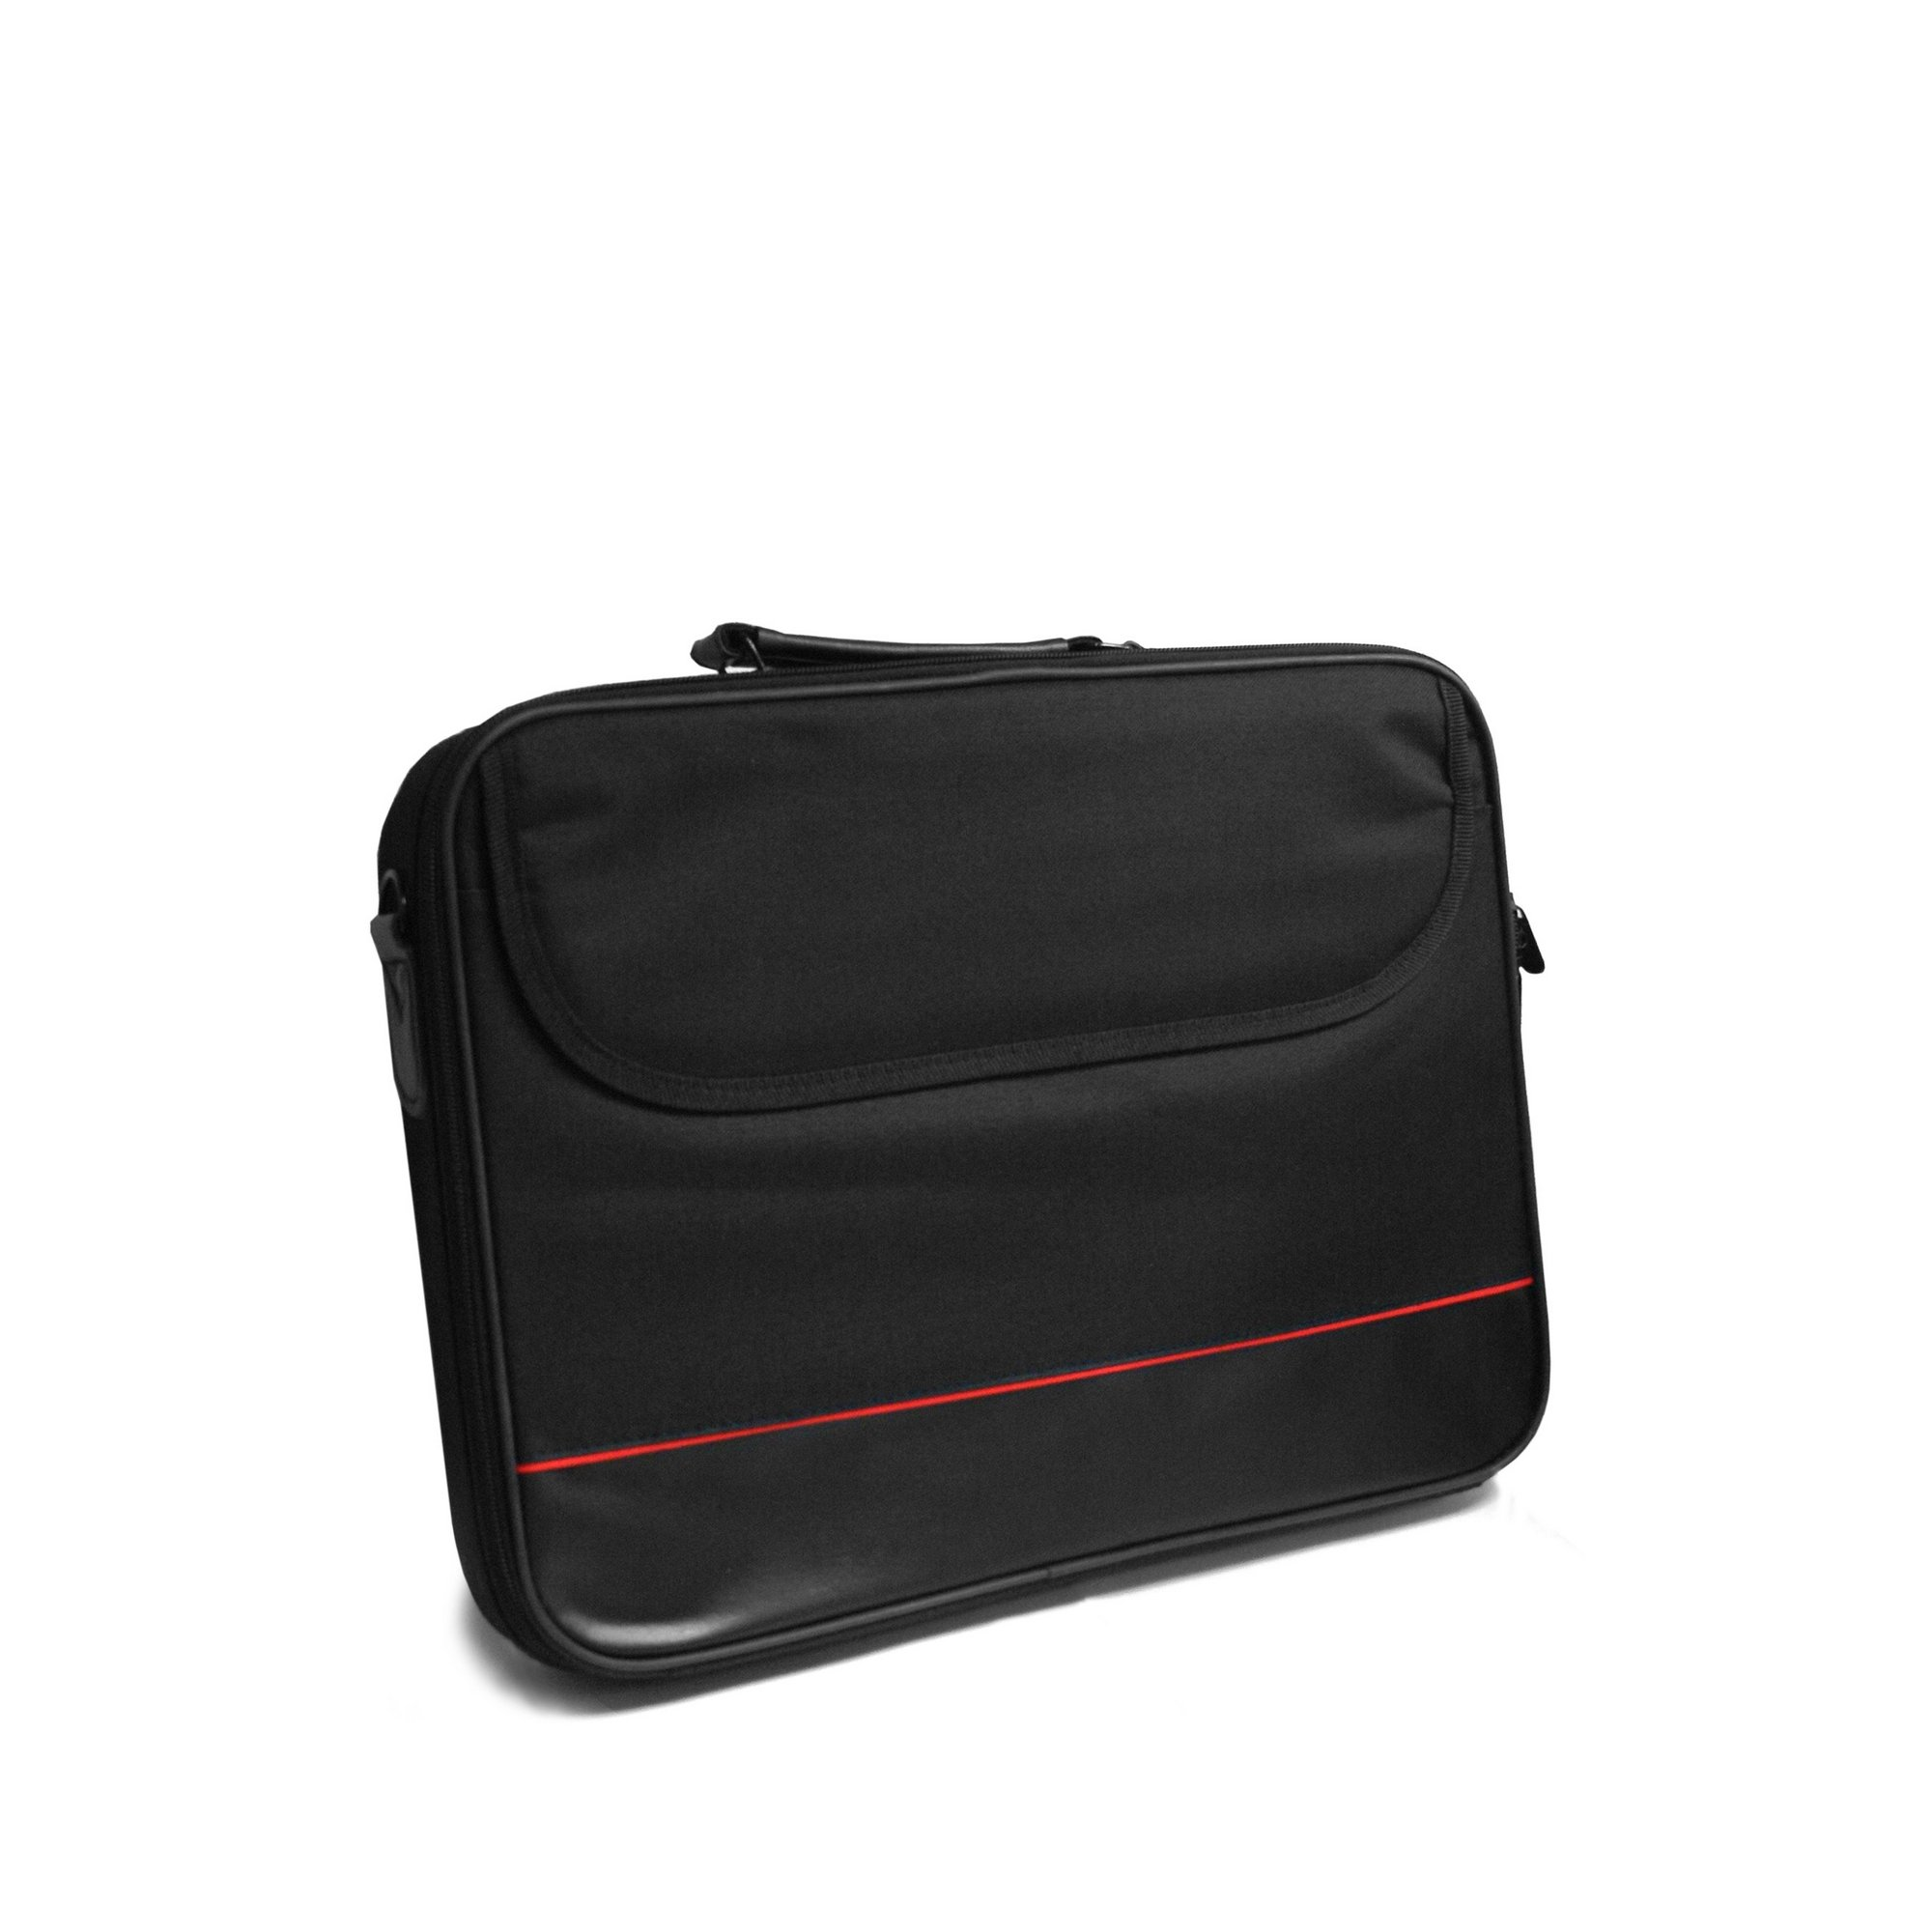 Image of High Quality 15.6 Inch Laptop / Notebook Carry Case with Detachab...